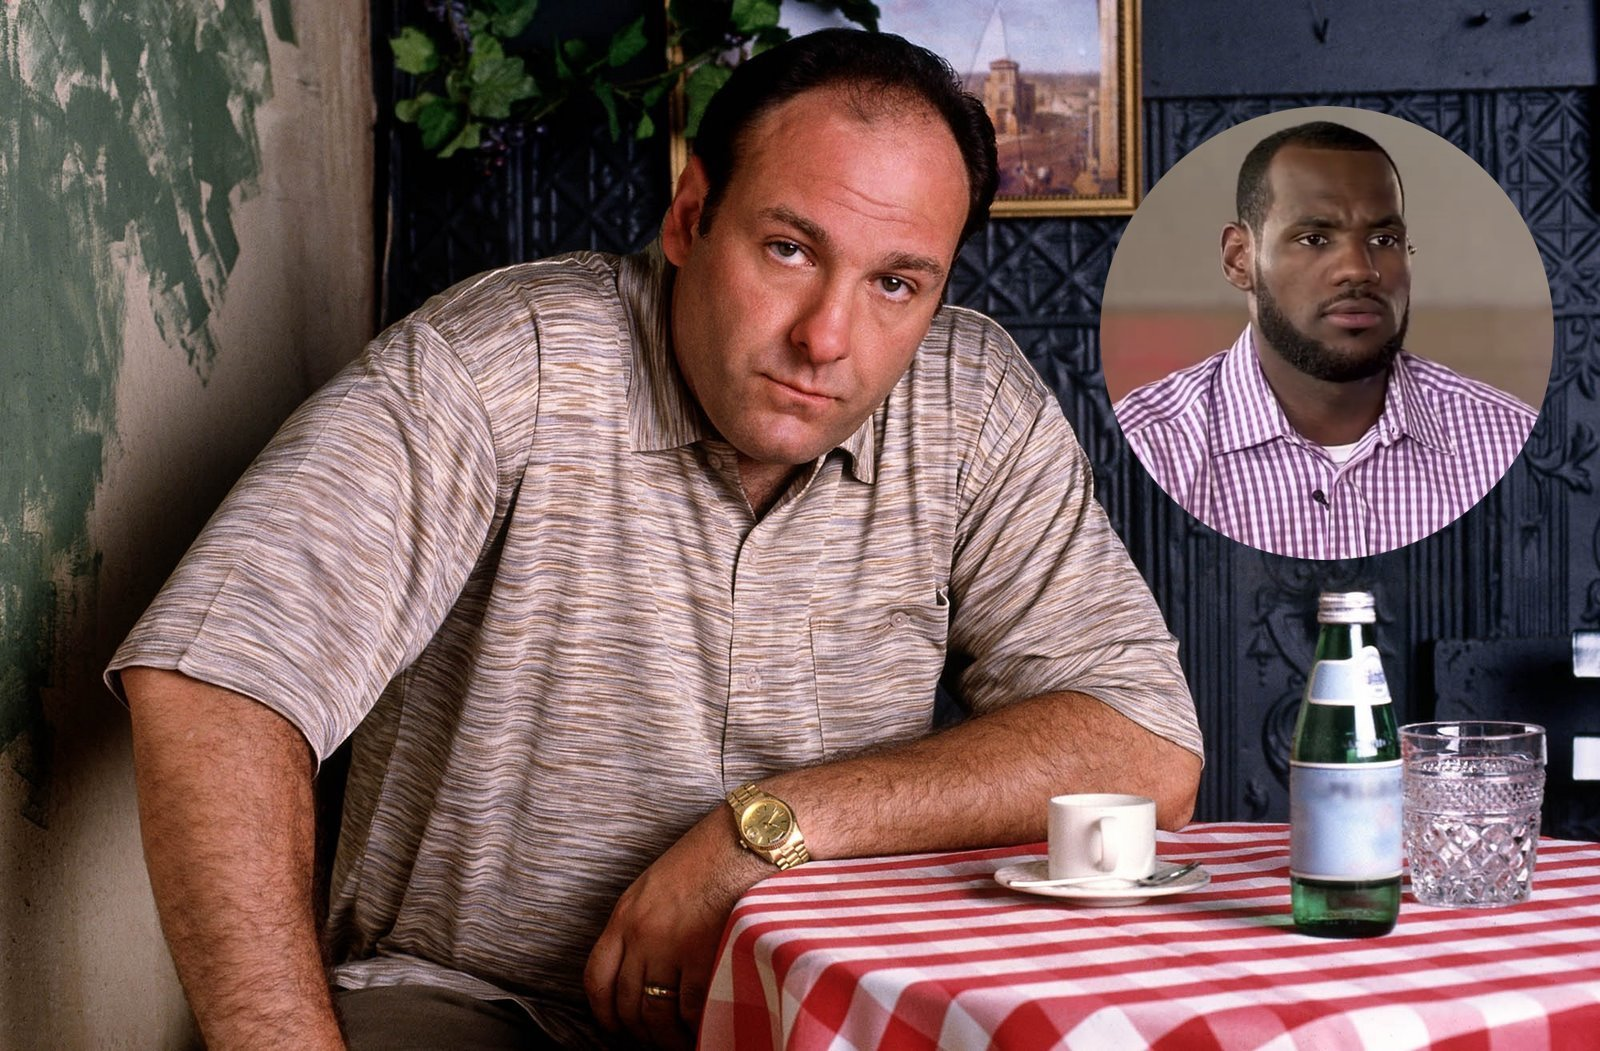 The Knicks Made A 'Sopranos' Short Film With James Gandolfini To Entice LeBron James Into Signing With The Team - BroBible